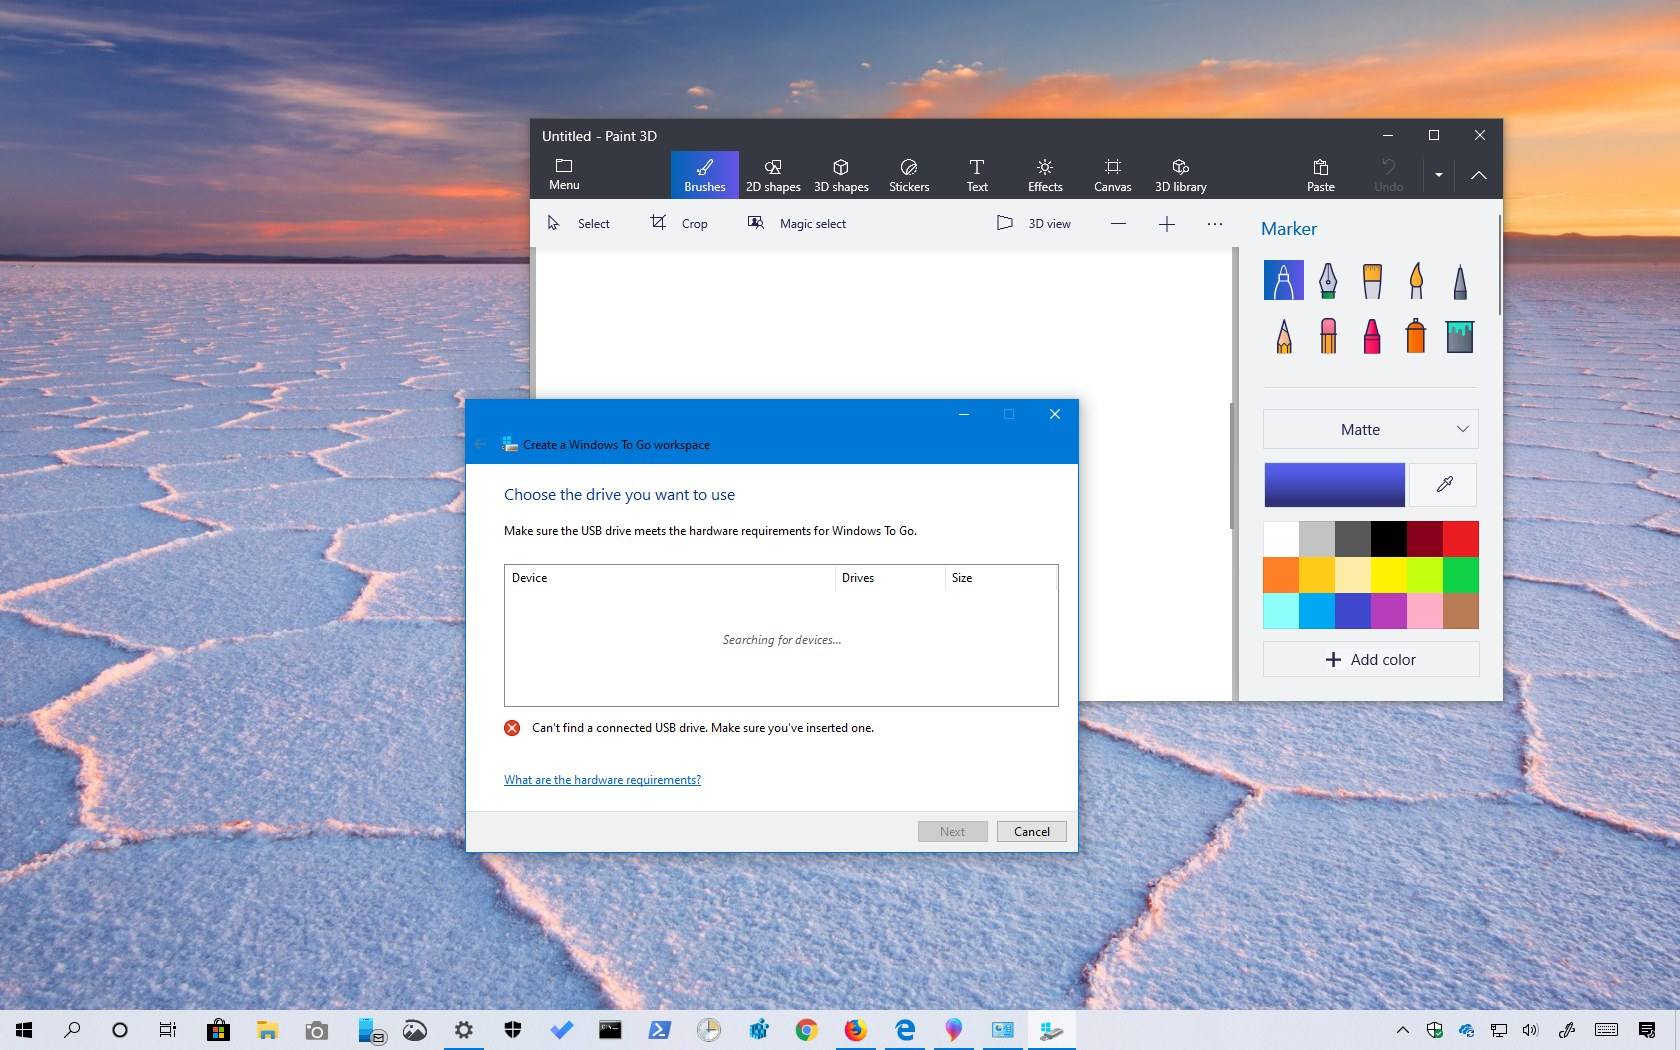 Windows 10 version 1903, May 2019 Update, removed features